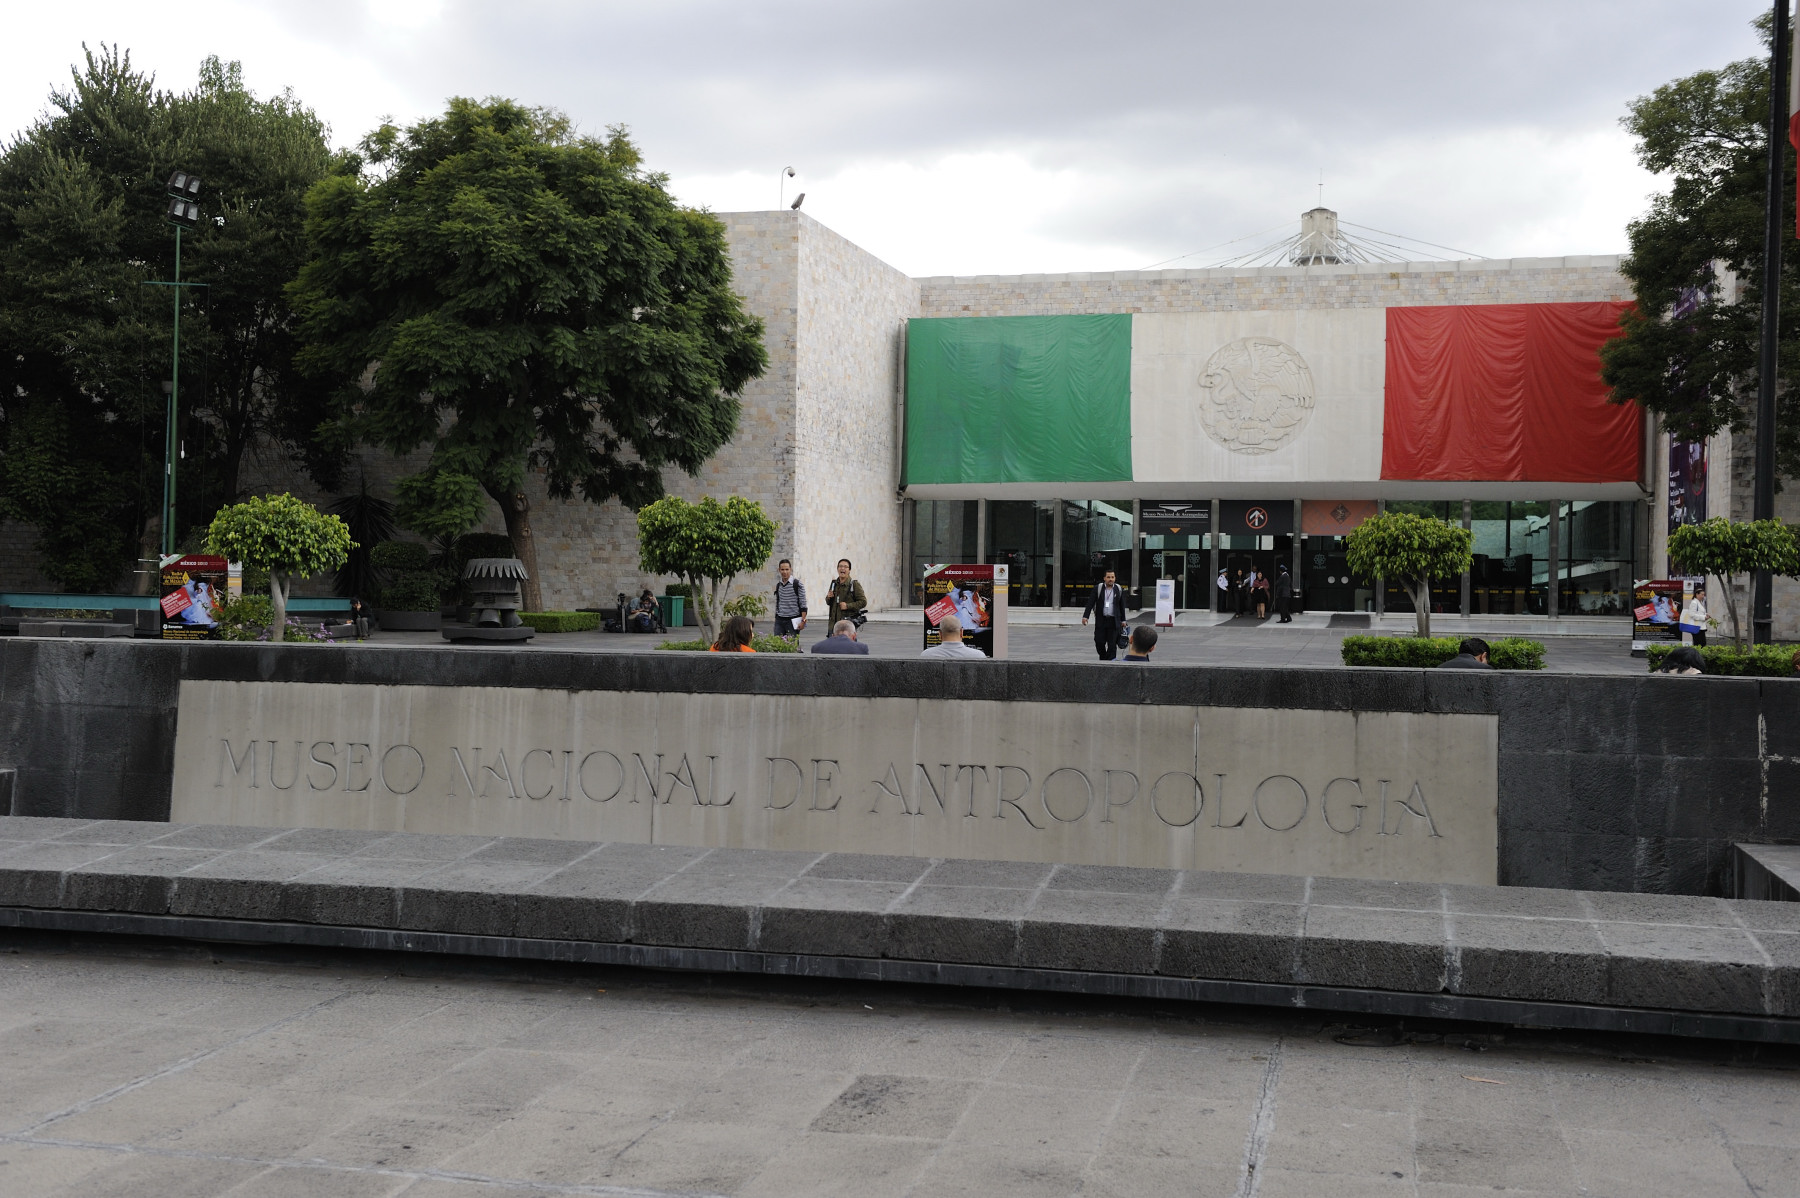 At the request of the Right Honourable Stephen Harper, Prime Minister of Canada, Their Excellencies visited Mexico City on September 13 and 14, 2010, to attend celebrations marking the bicentennial of the independence of the United Mexican States and the centennial of its revolution.